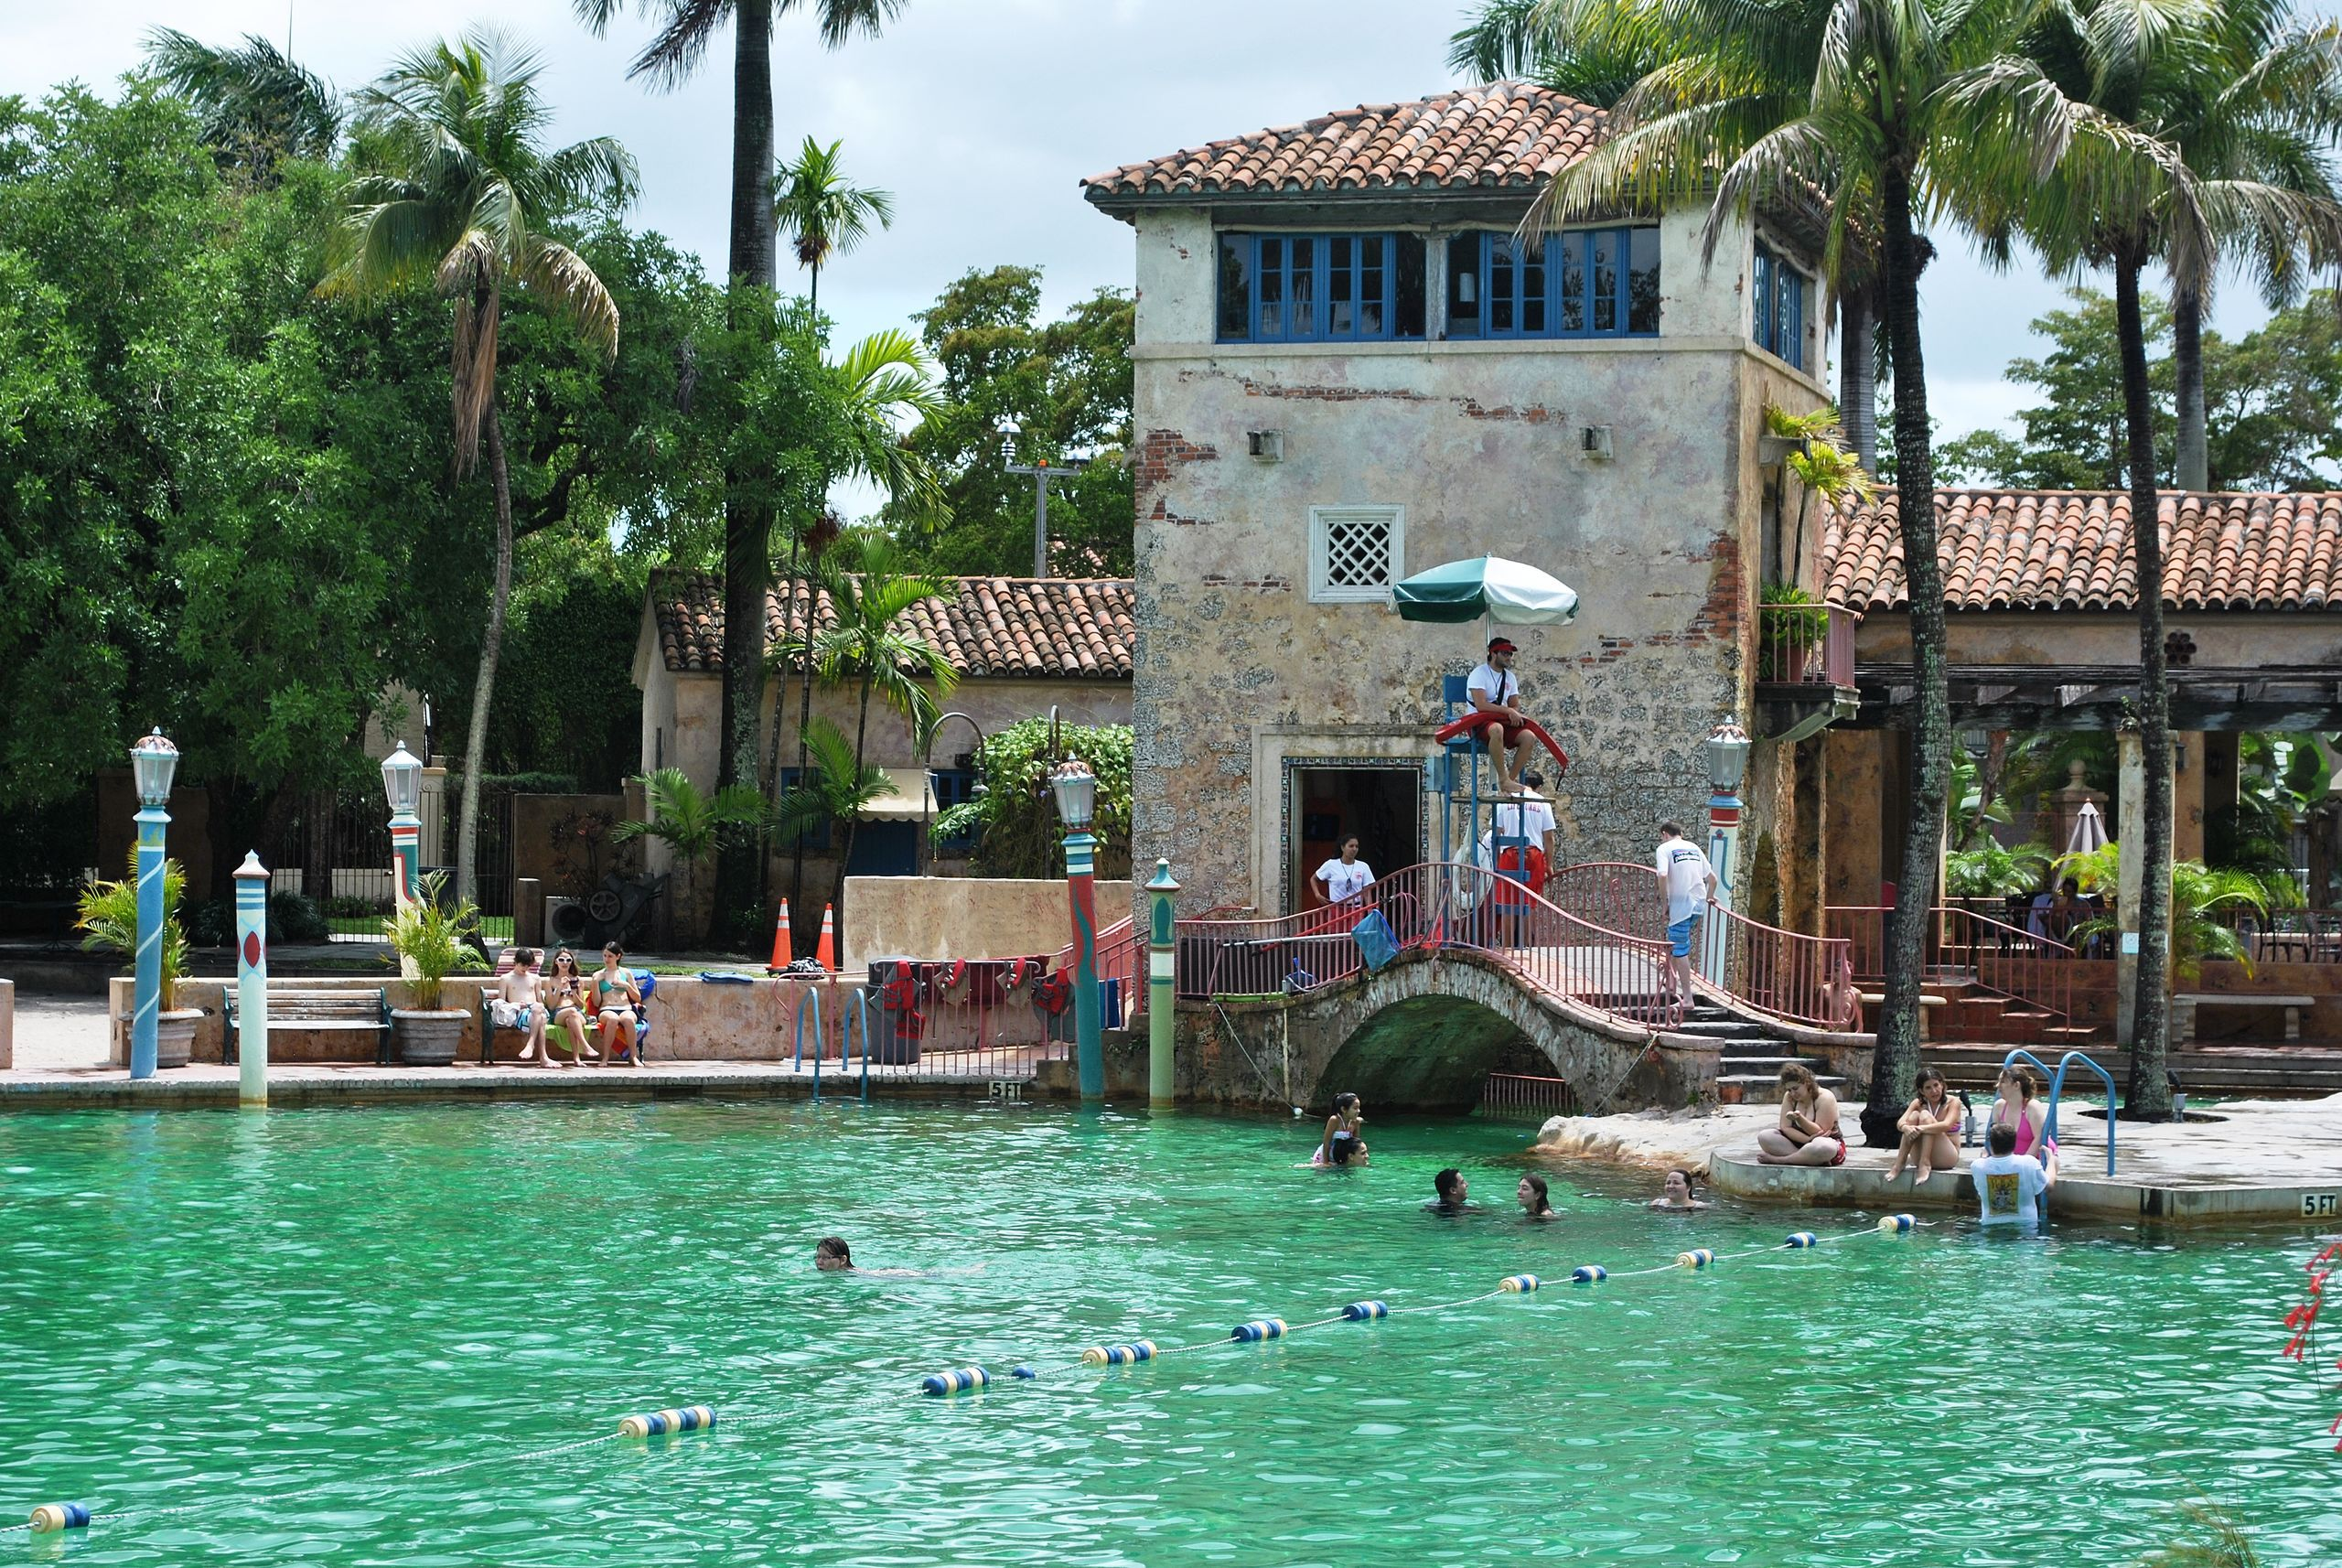 The coral gables Venetian pool in Florida